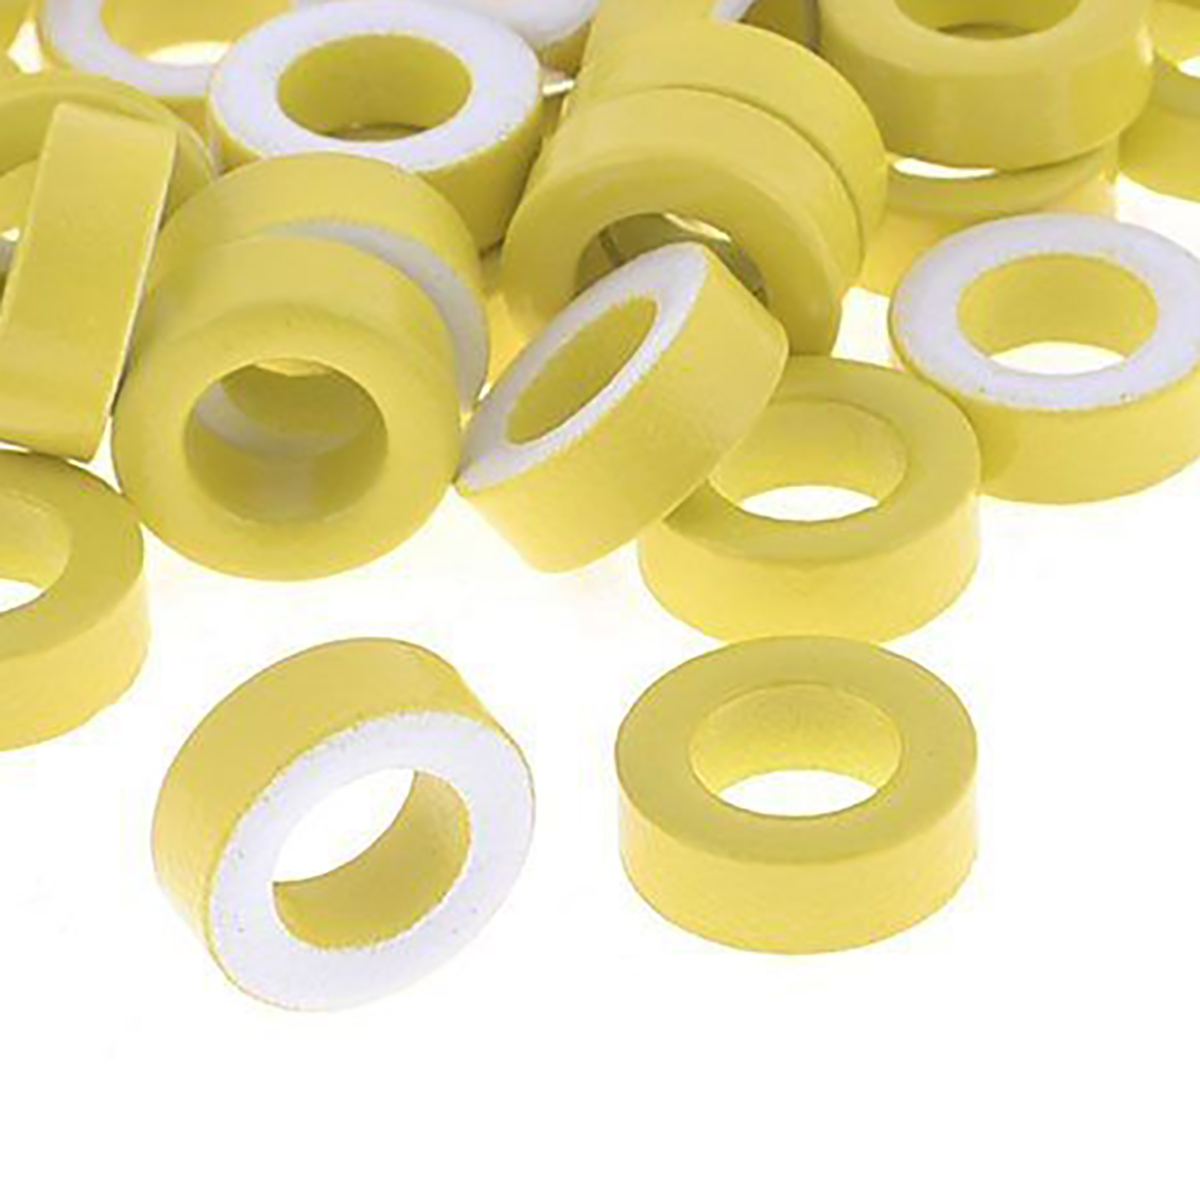 50pcs Toroid Ferrite Cores T50-26  Yellow White Ring Iron Cores For Power Transformers Inductors 7.5mm Inner Diameter